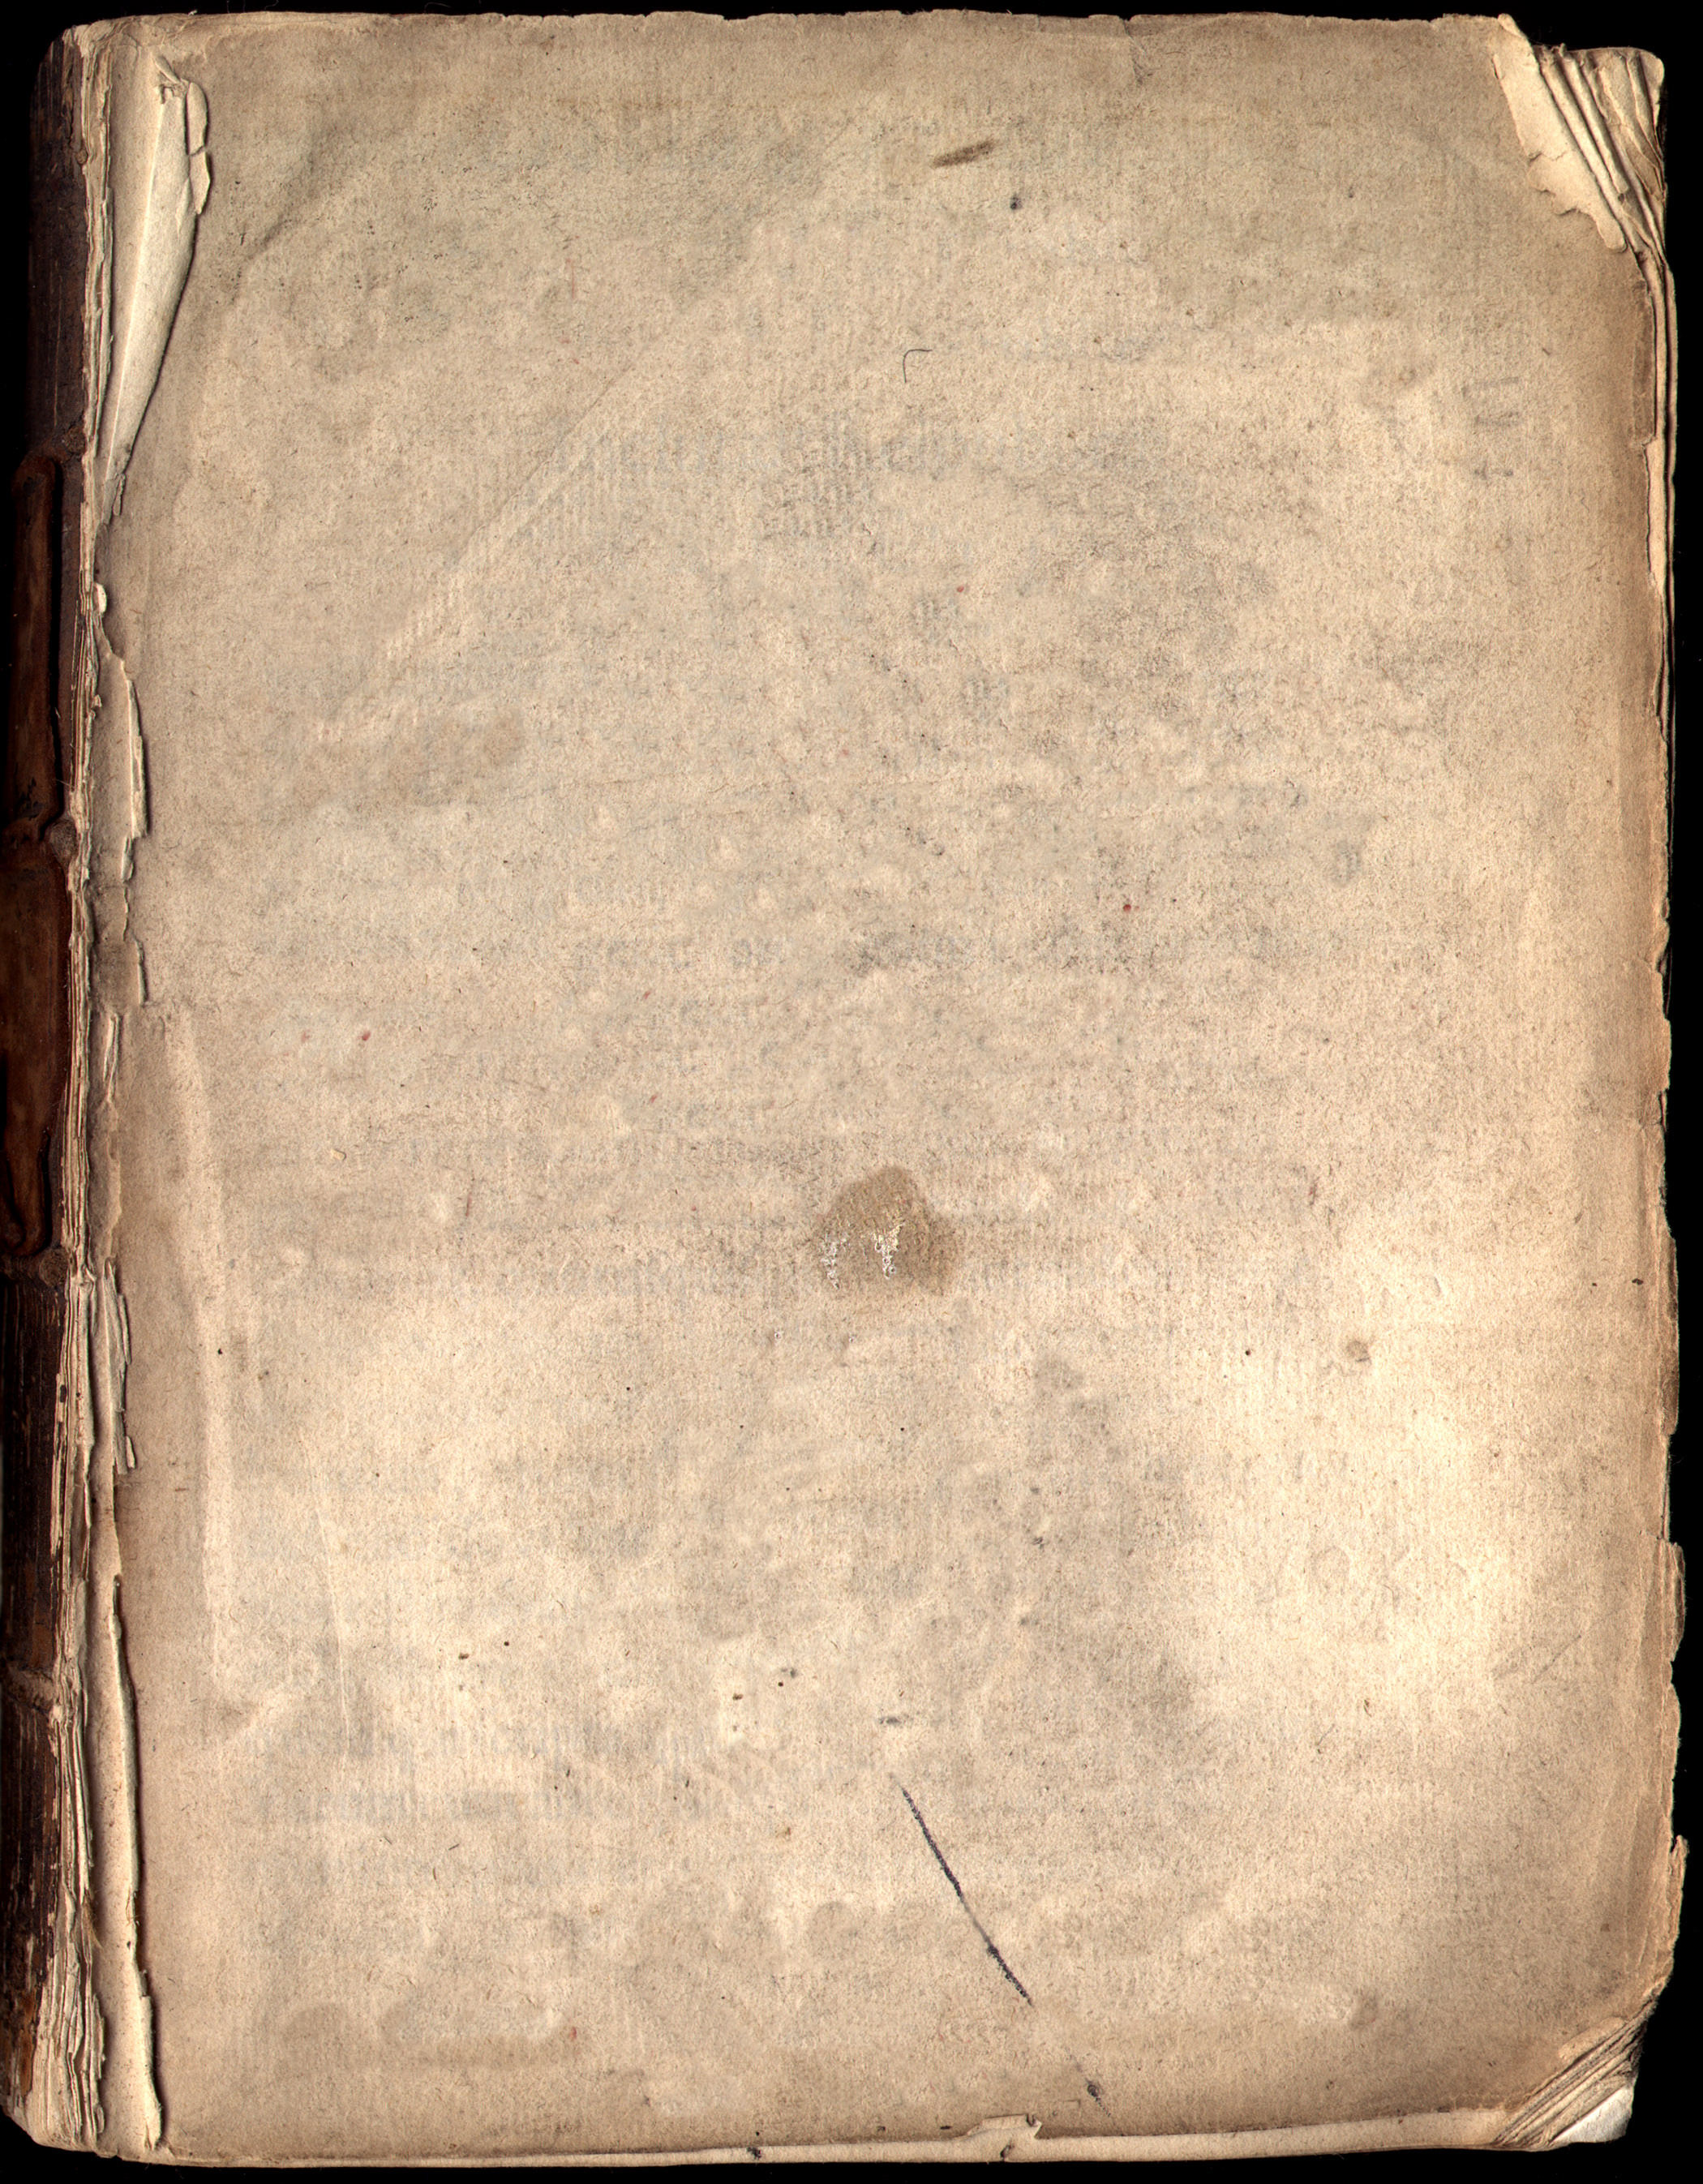 83 Old Book Textures Photoshop Textures Patterns